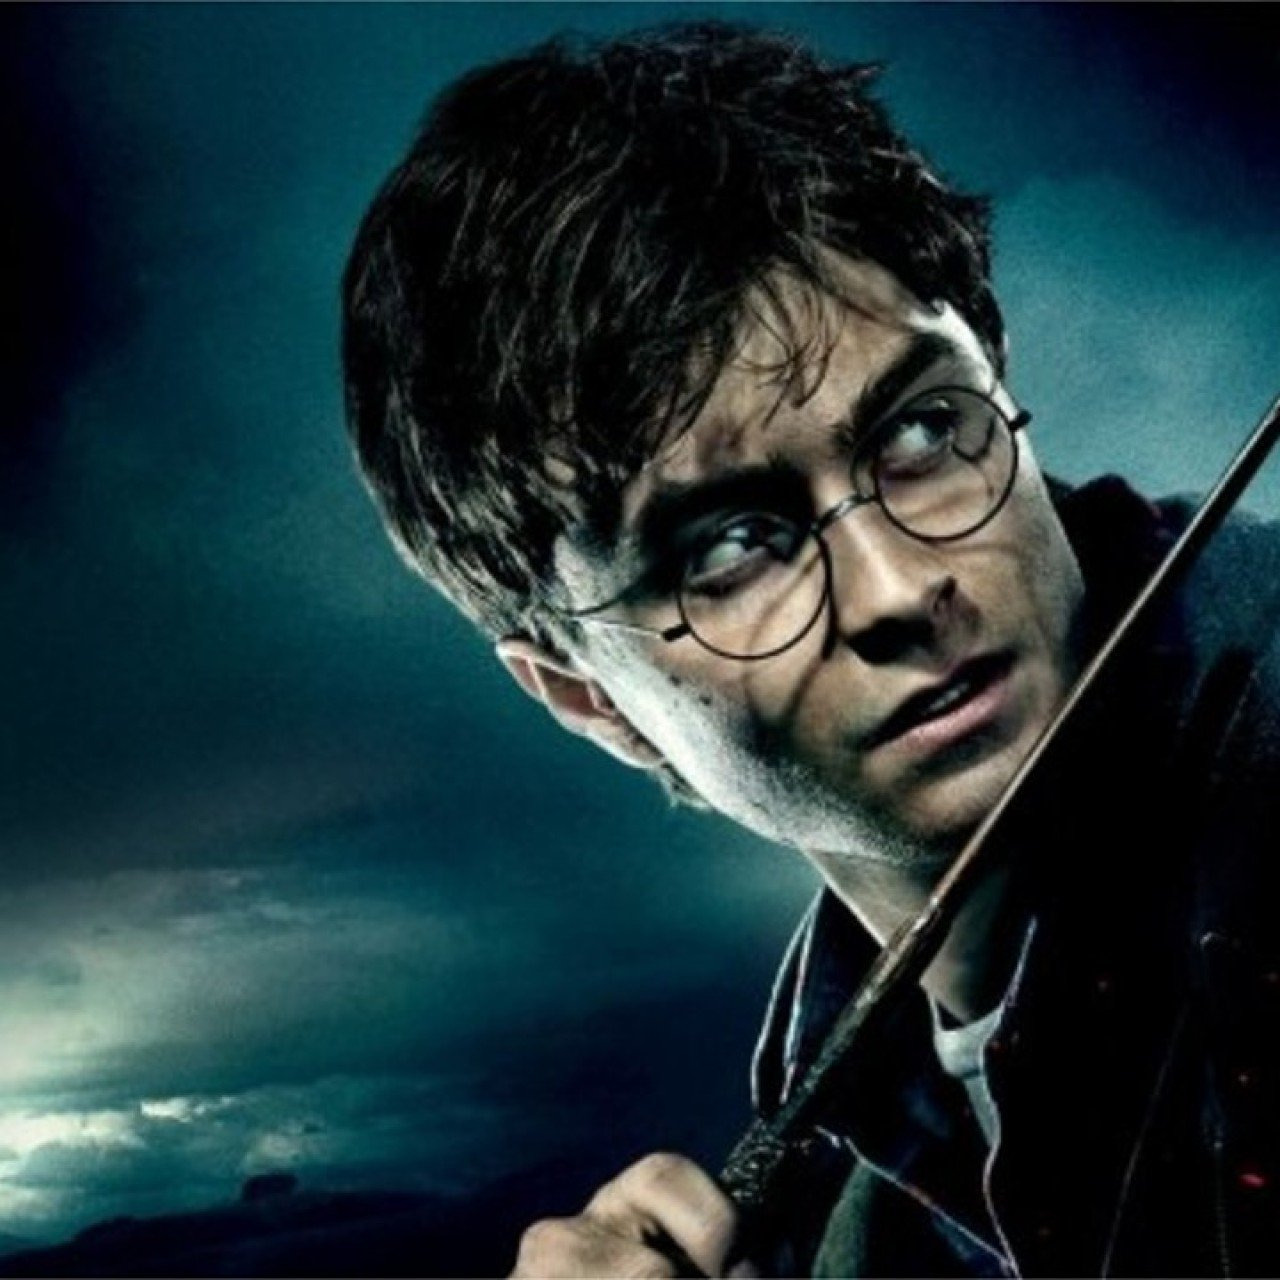 A Harry Potter game for smartphones from Pokemon Go creators   South